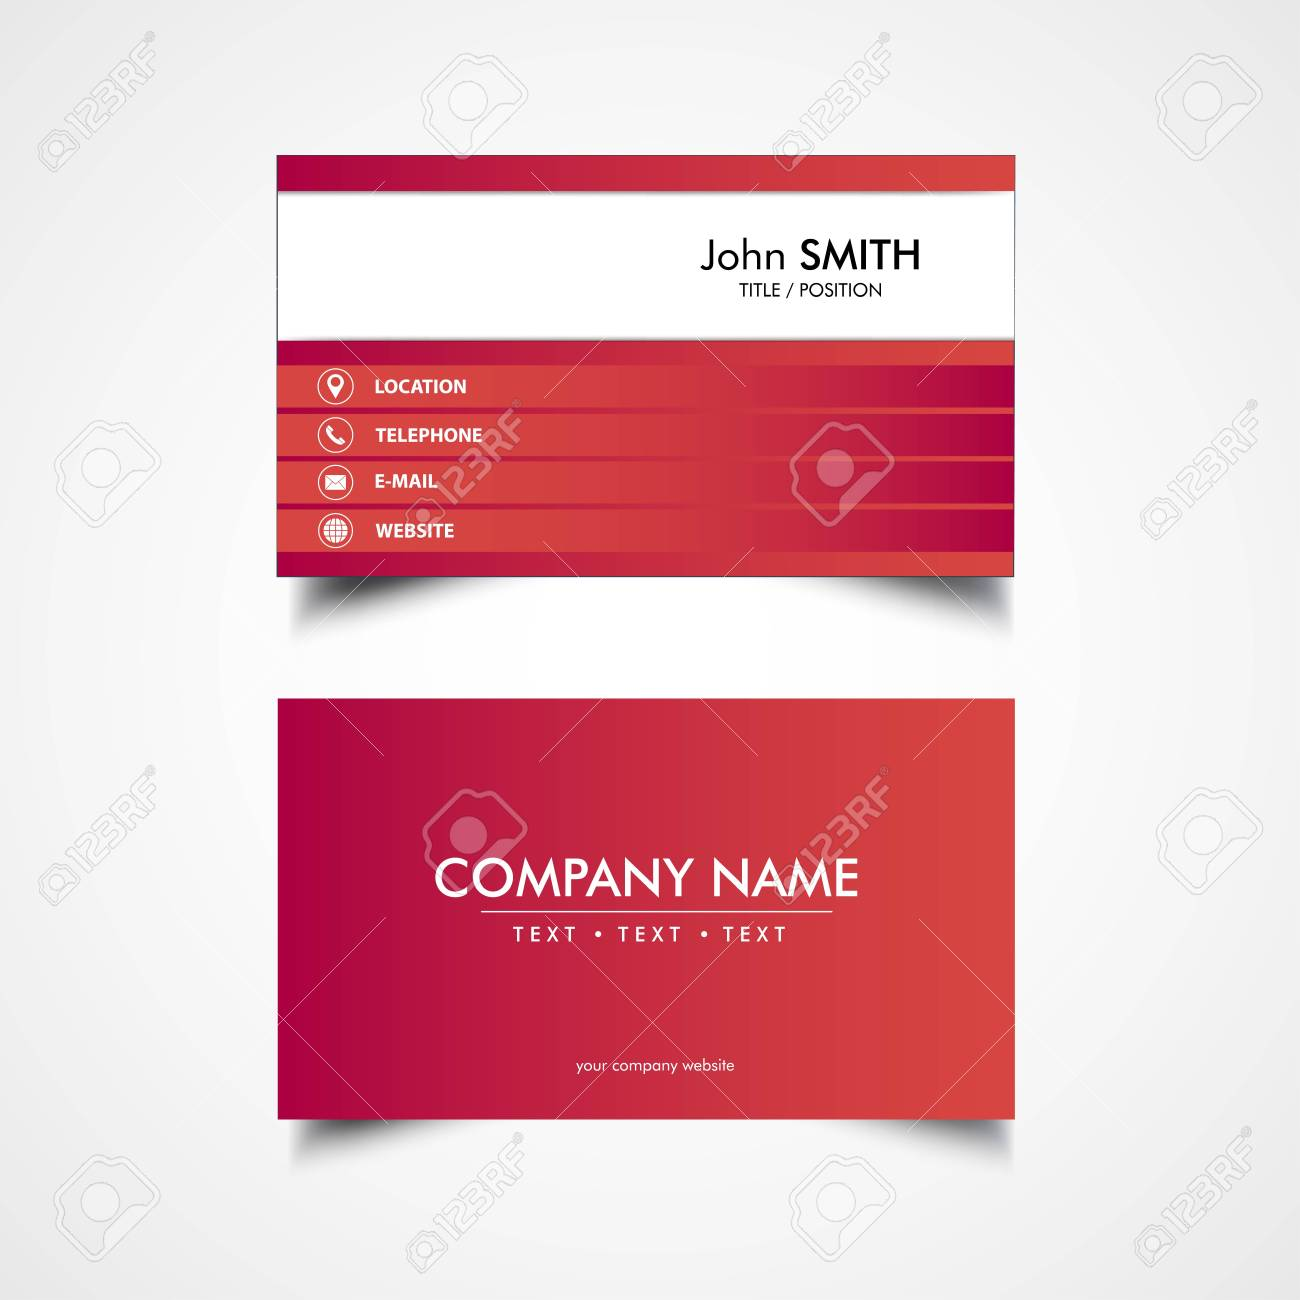 Simple Business Card Template Vector Illustration Eps File - Business card template eps